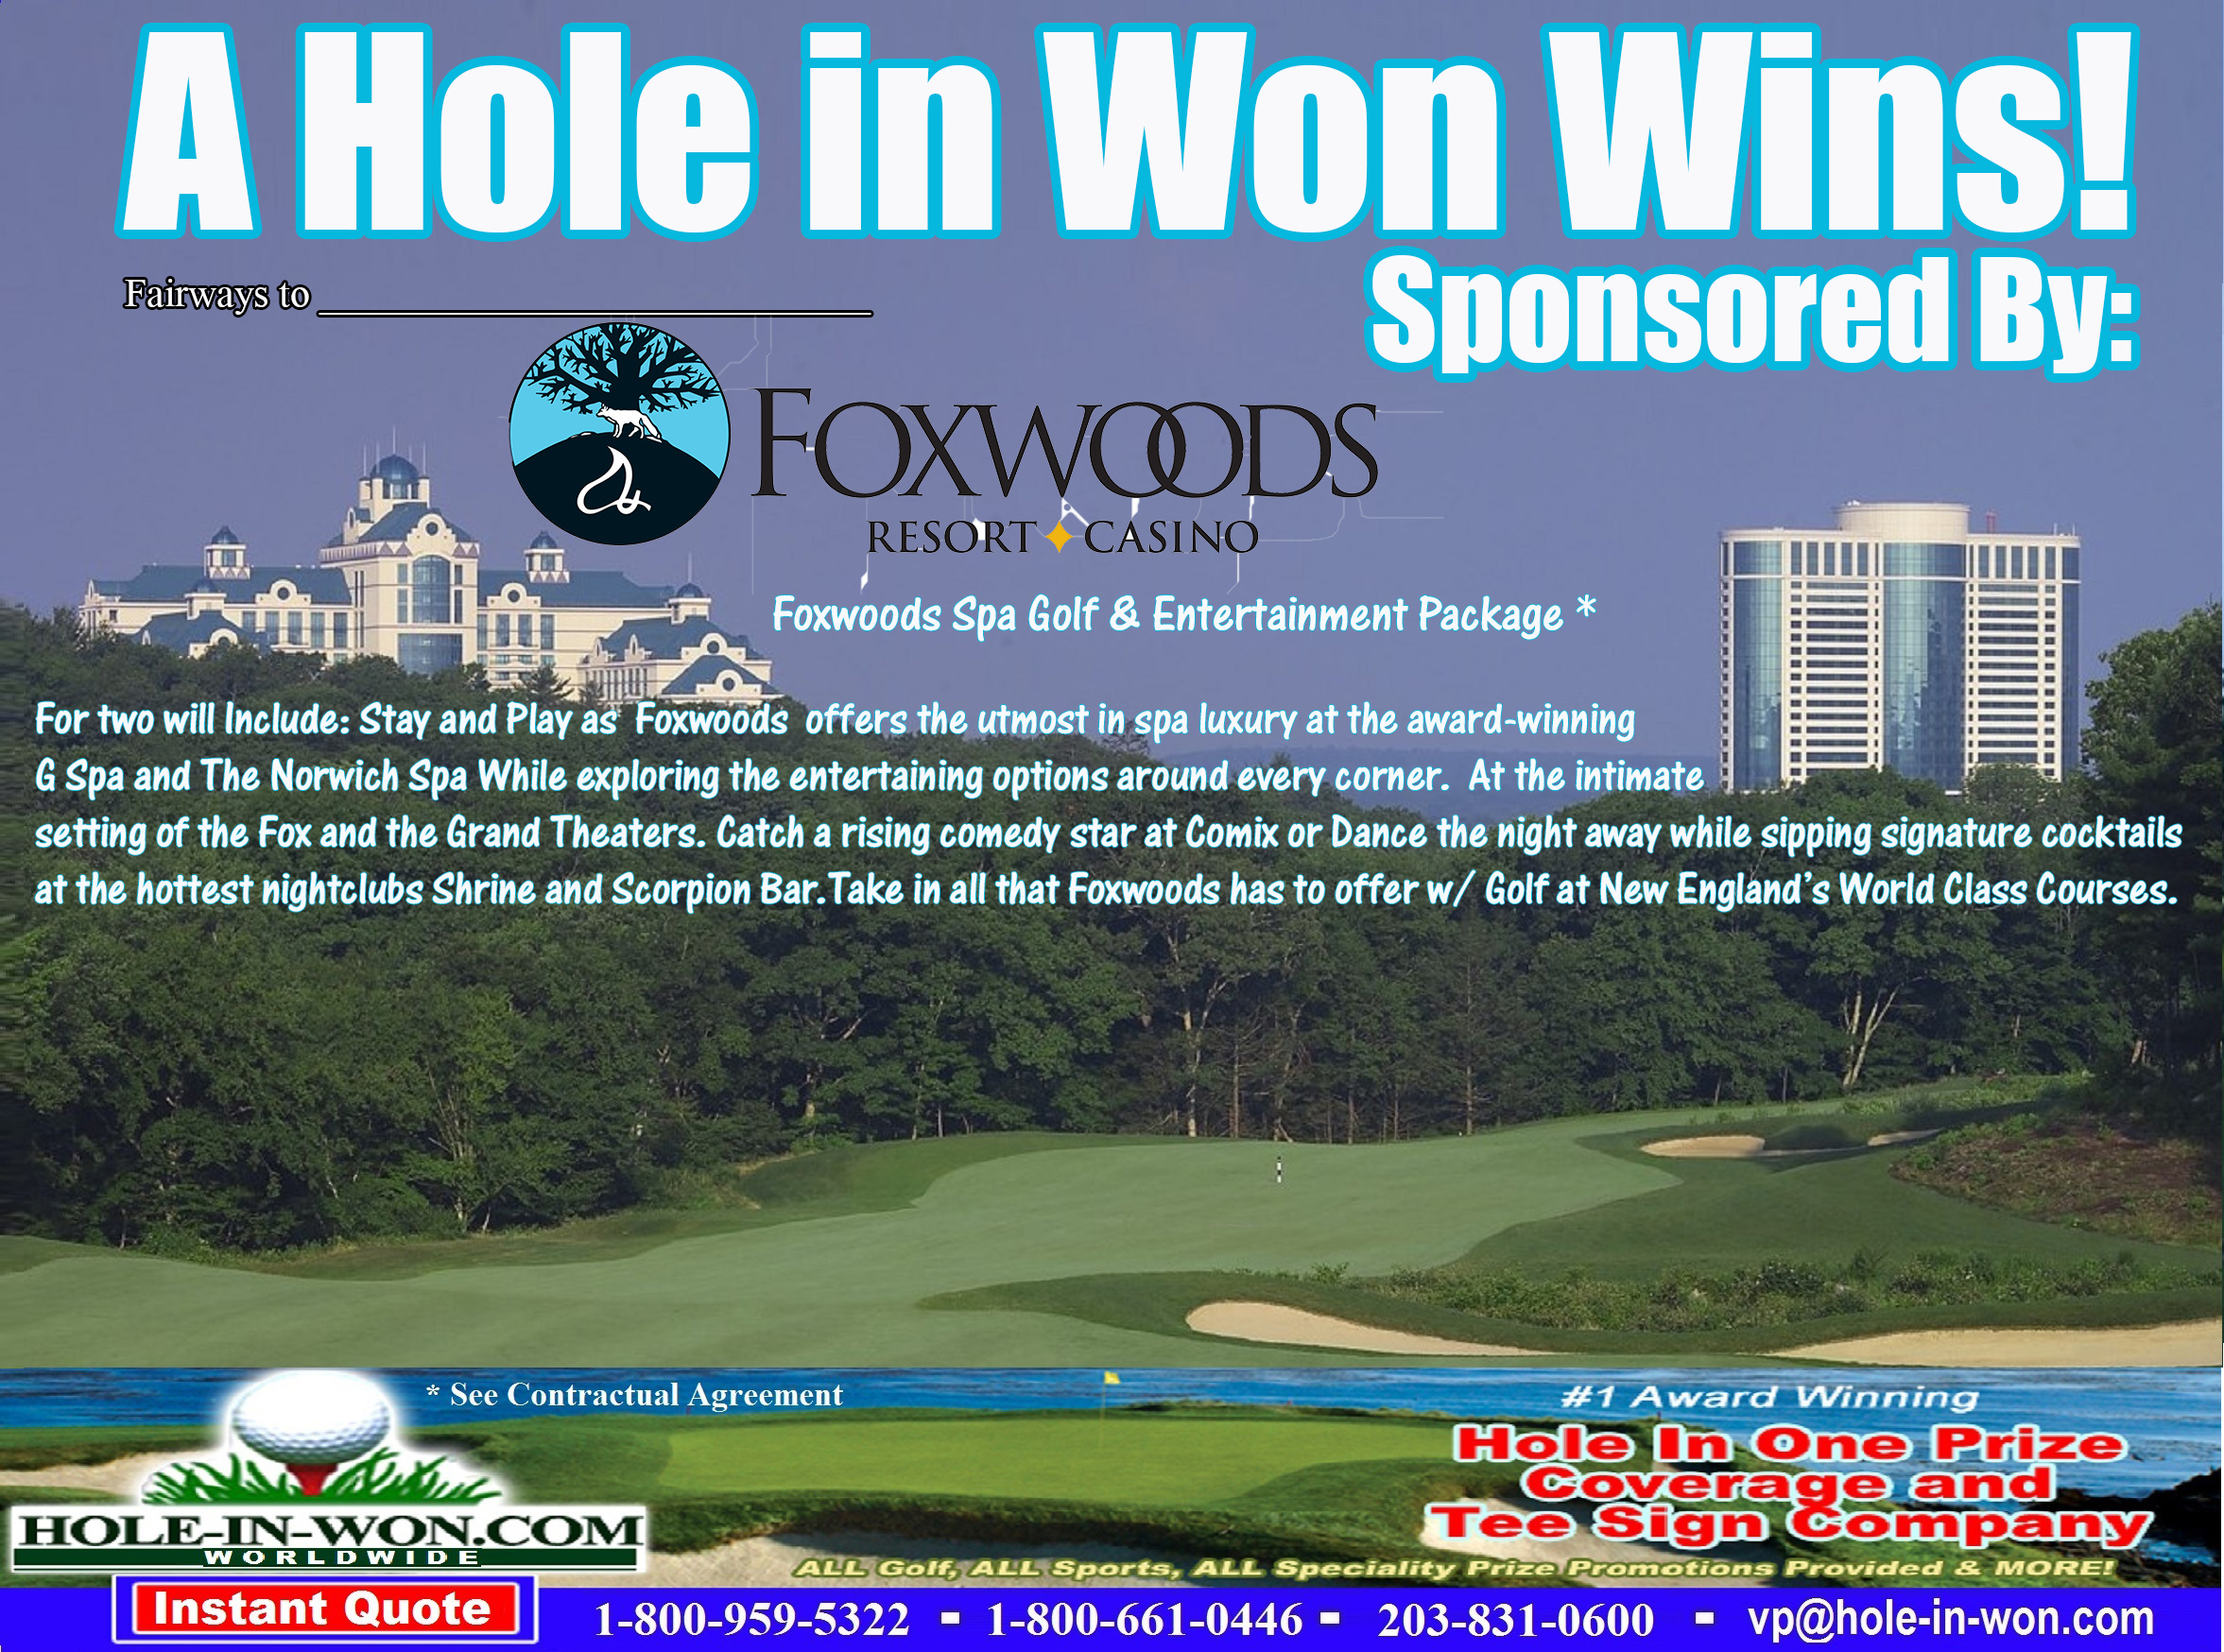 Foxwoods Casino Hole in One Golf Tee Sign